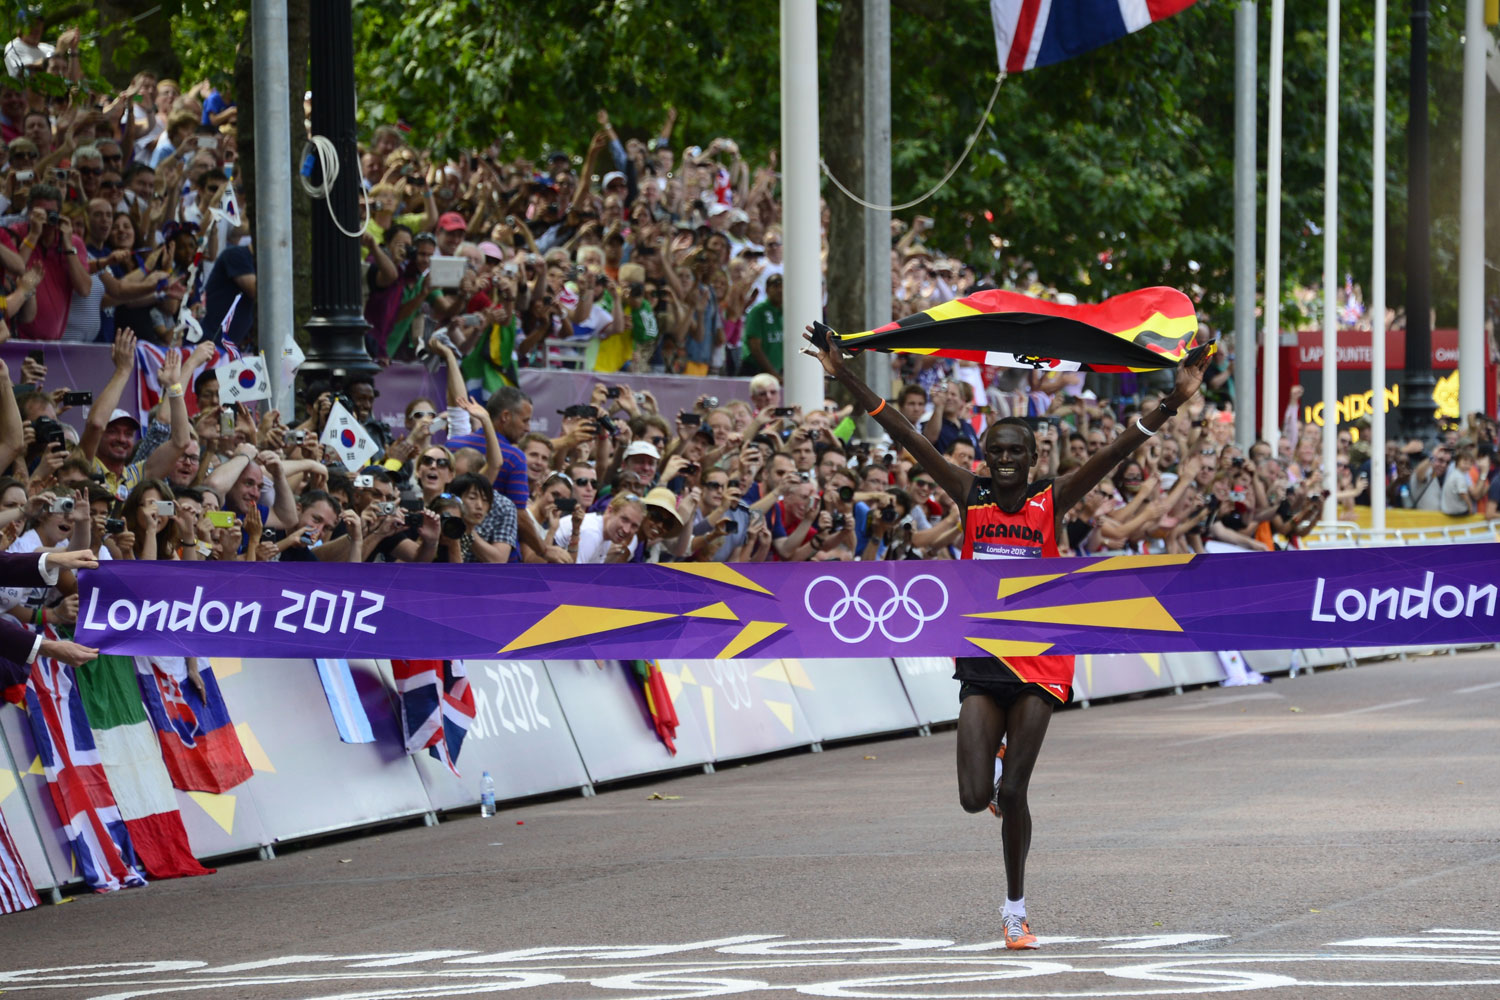 Uganda's Stephen Kiprotich waves his national flag as he crosses the finish line to win the athletics event men's marathon during the London 2012 Olympic Games on August 12, 2012 in London.